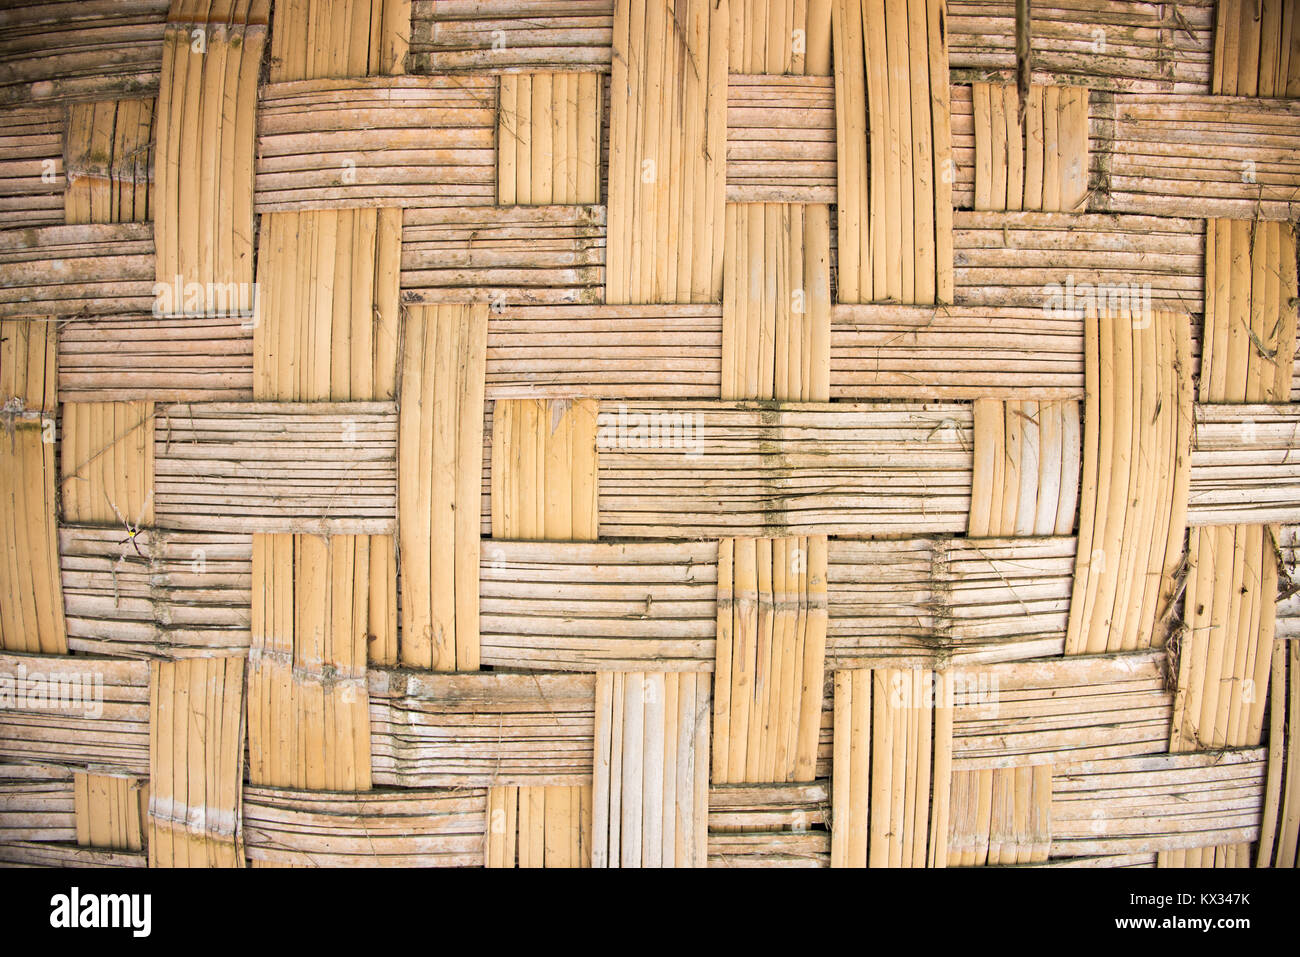 Close up of woven grass hut wall exterior on Mystery Island, Vanuatu - Stock Image